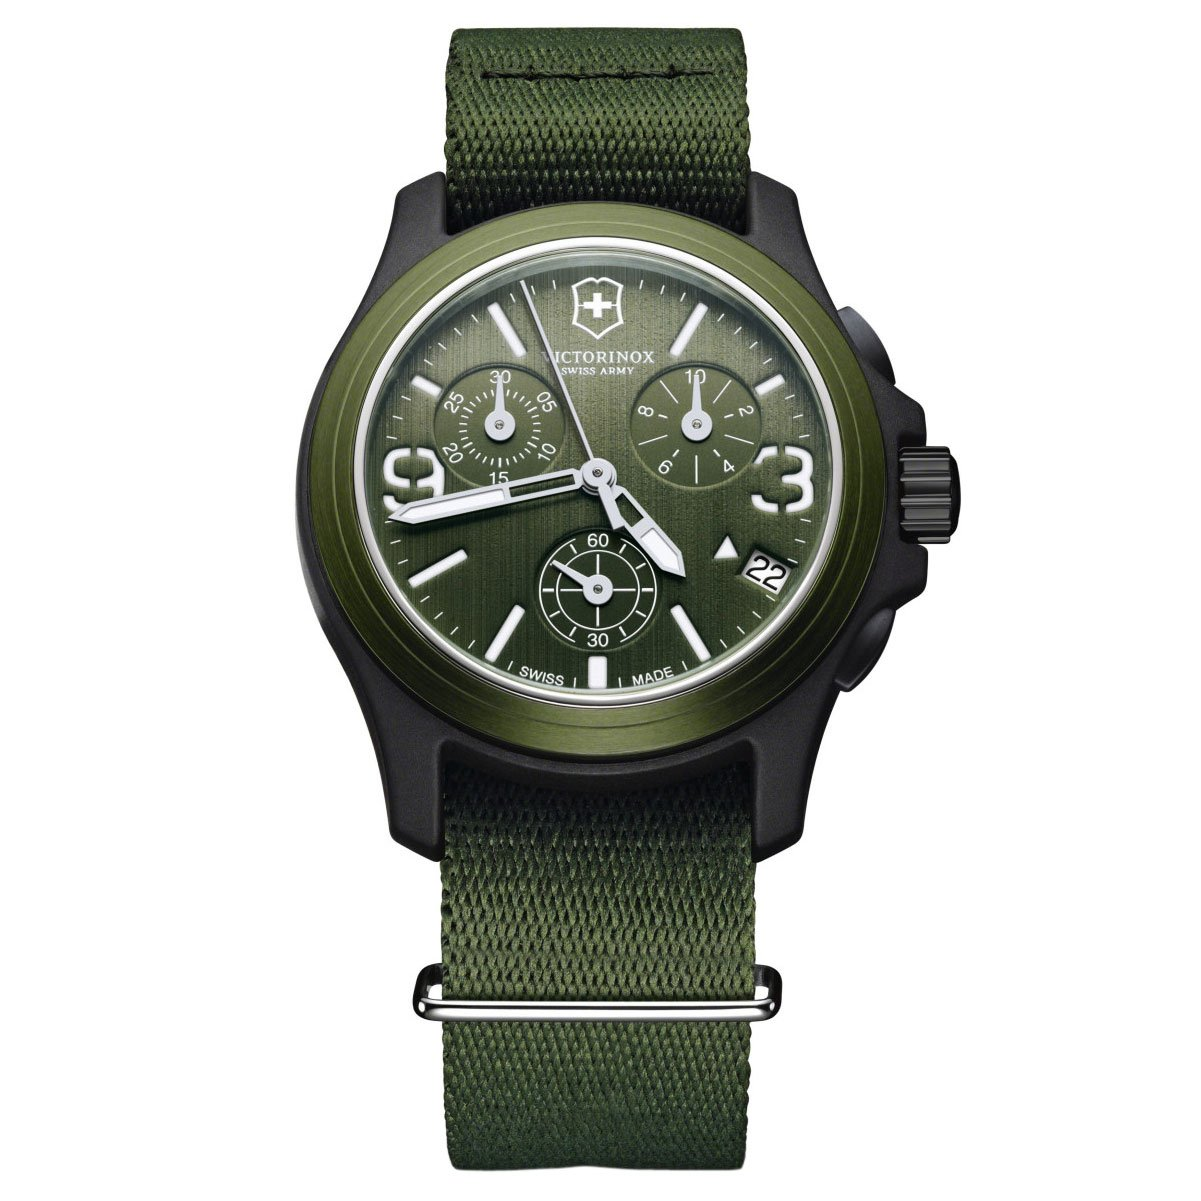 Amazon com: Victorinox Swiss Army Men's 241531 Original Chronograph